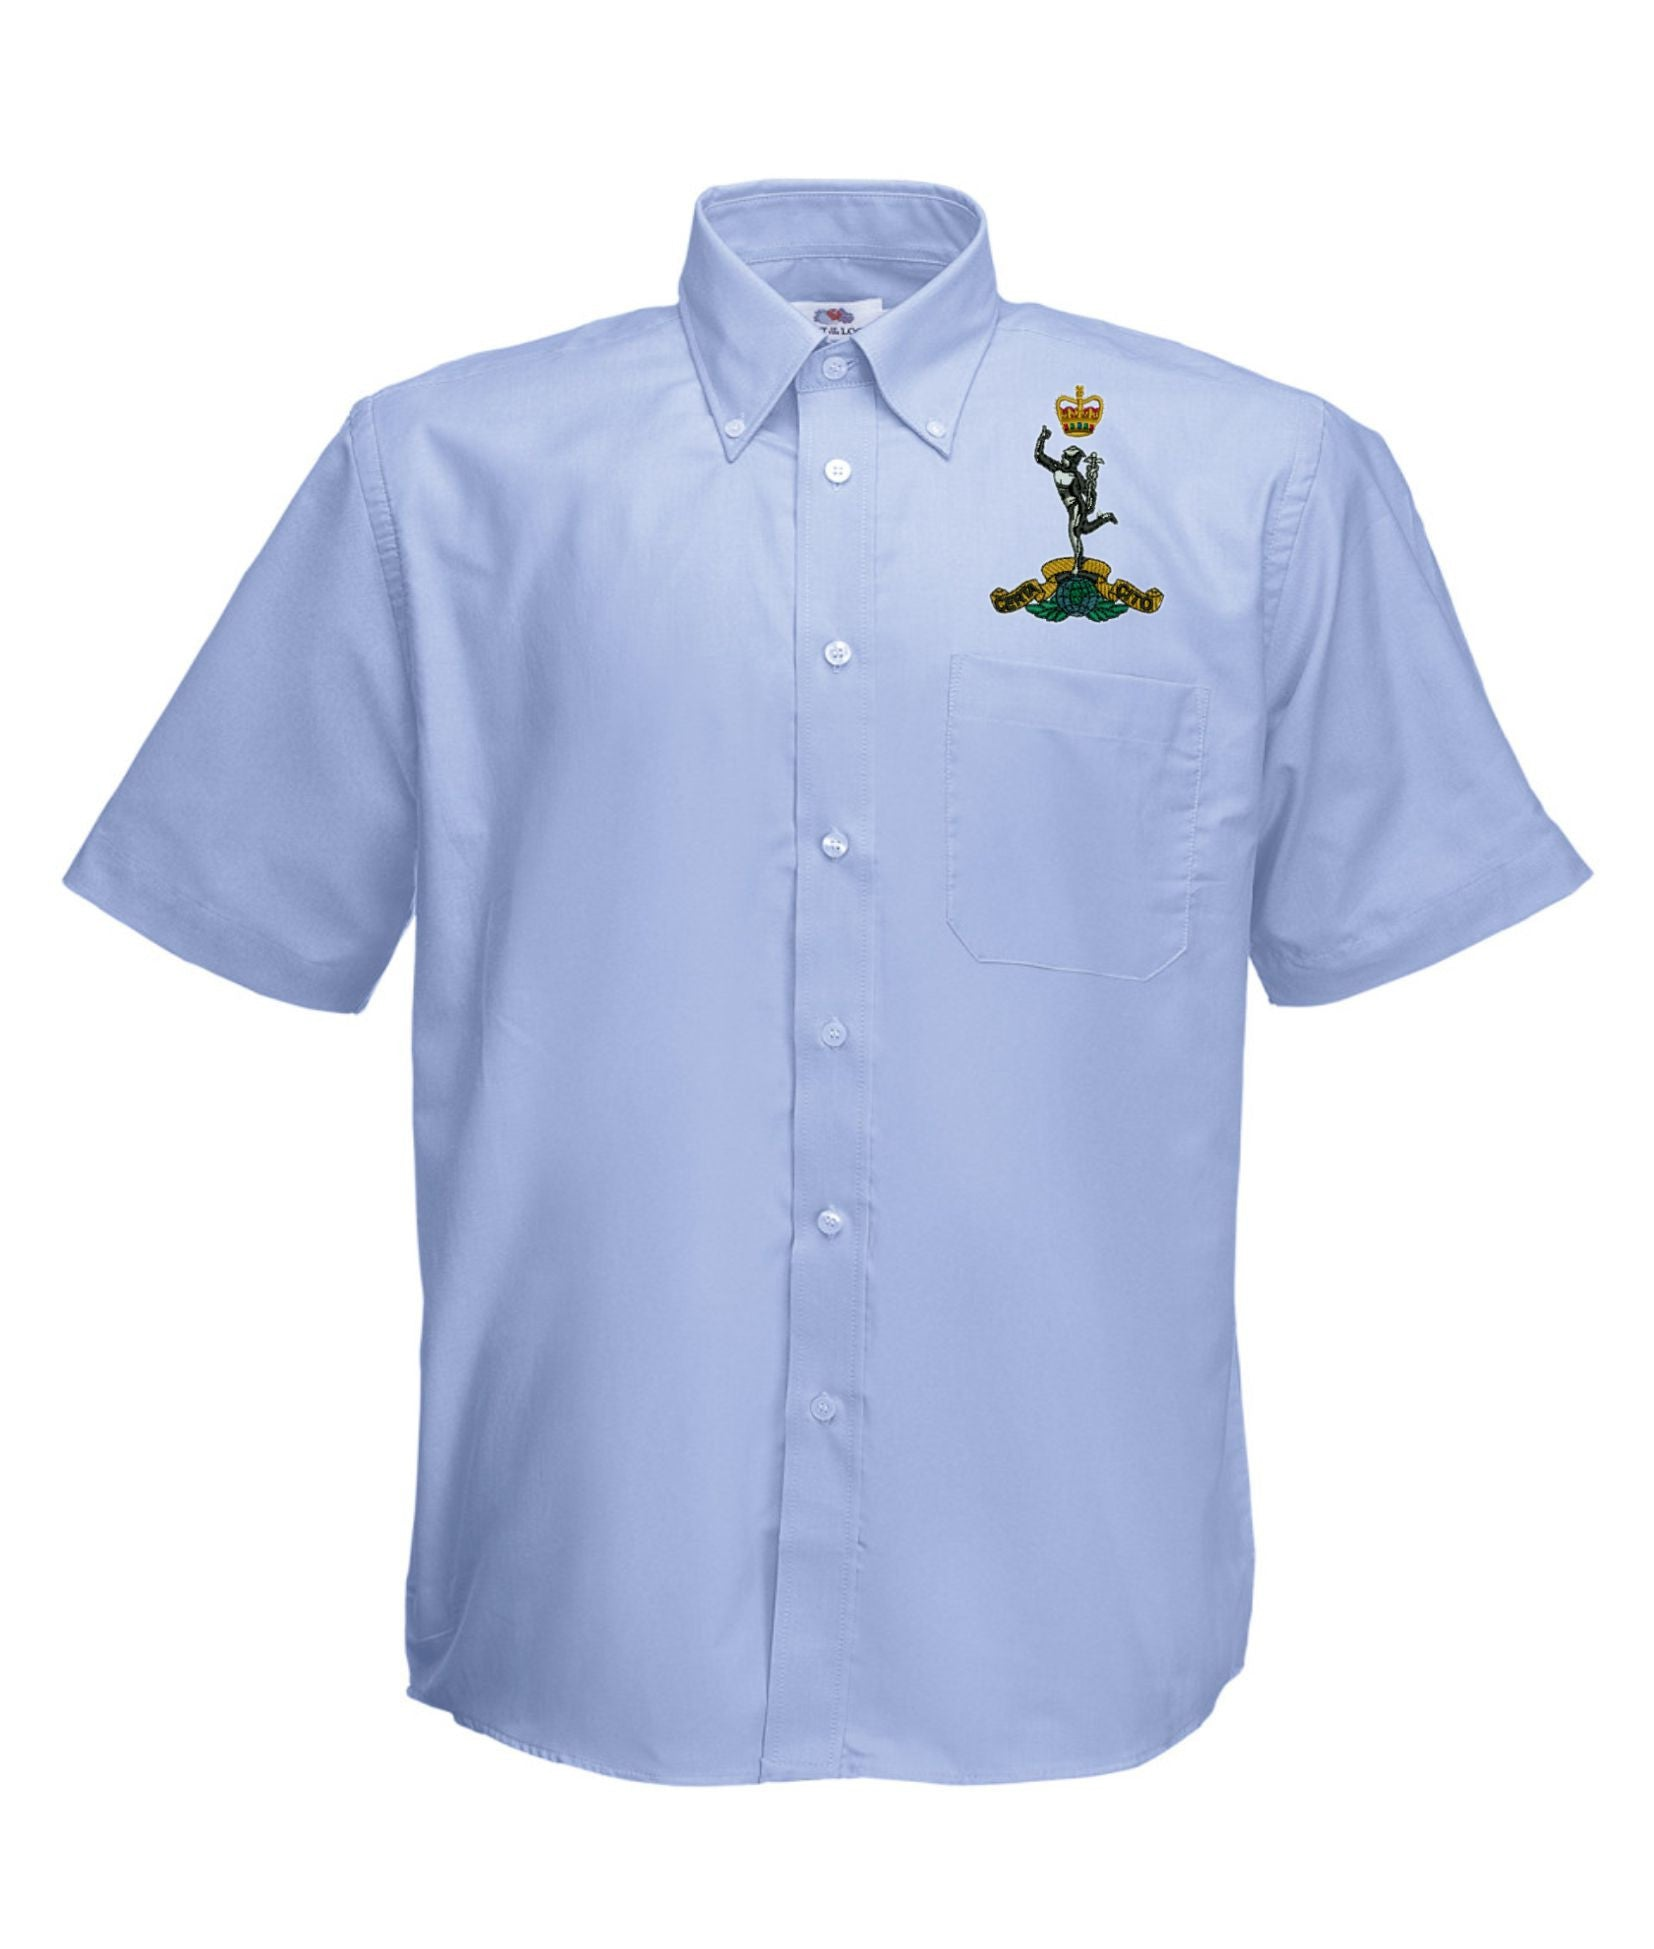 Royal Signals Shirt